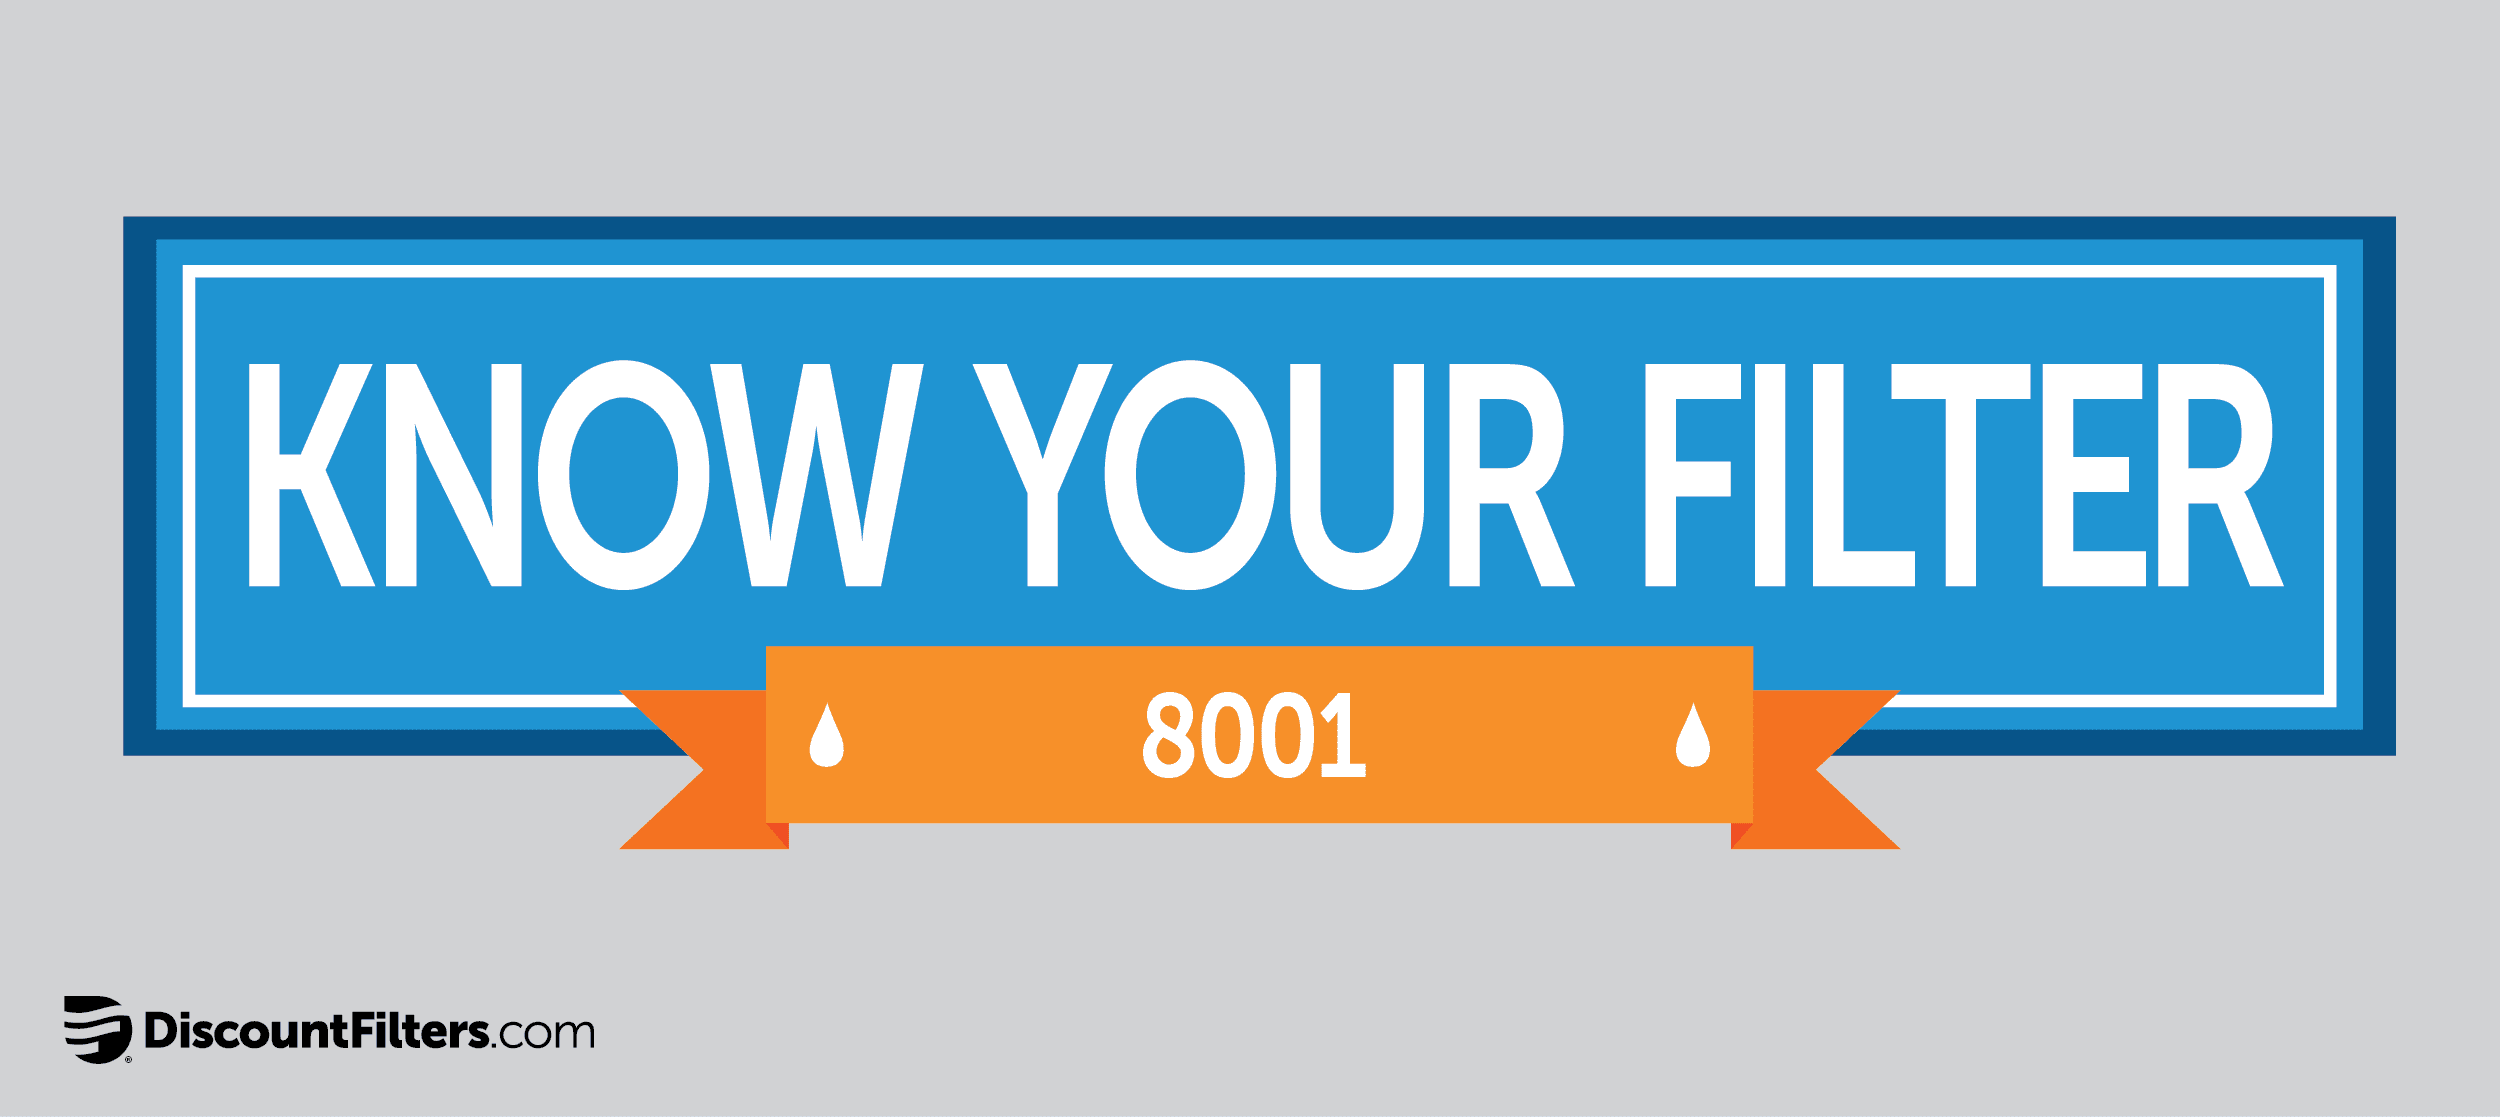 know your fridge filter: 8001